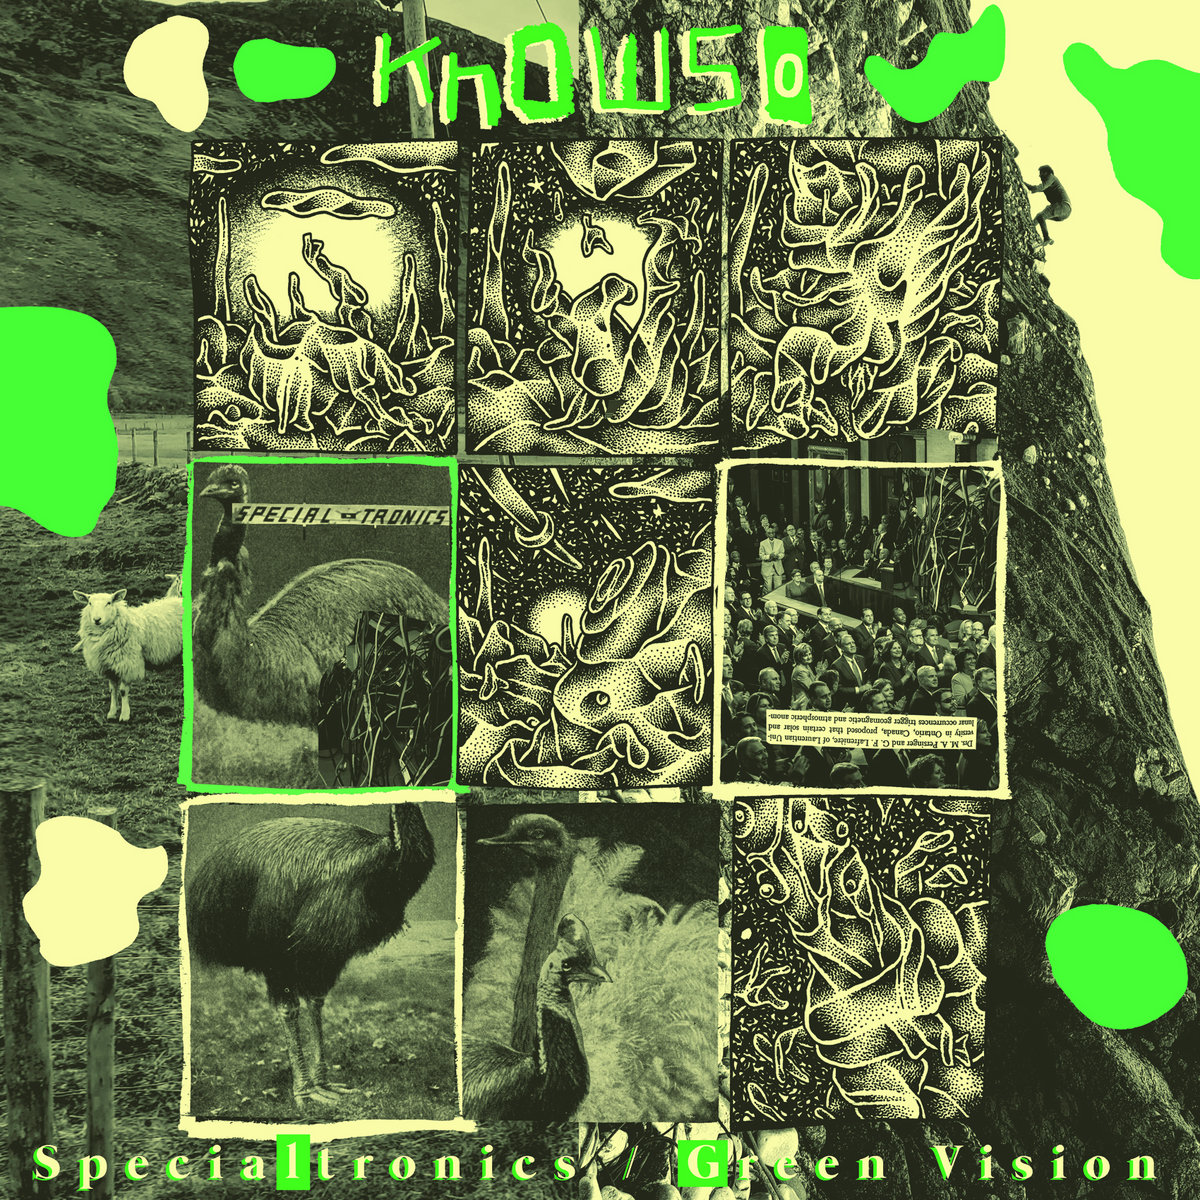 Knowso - Specialtronics/Green Vision LP